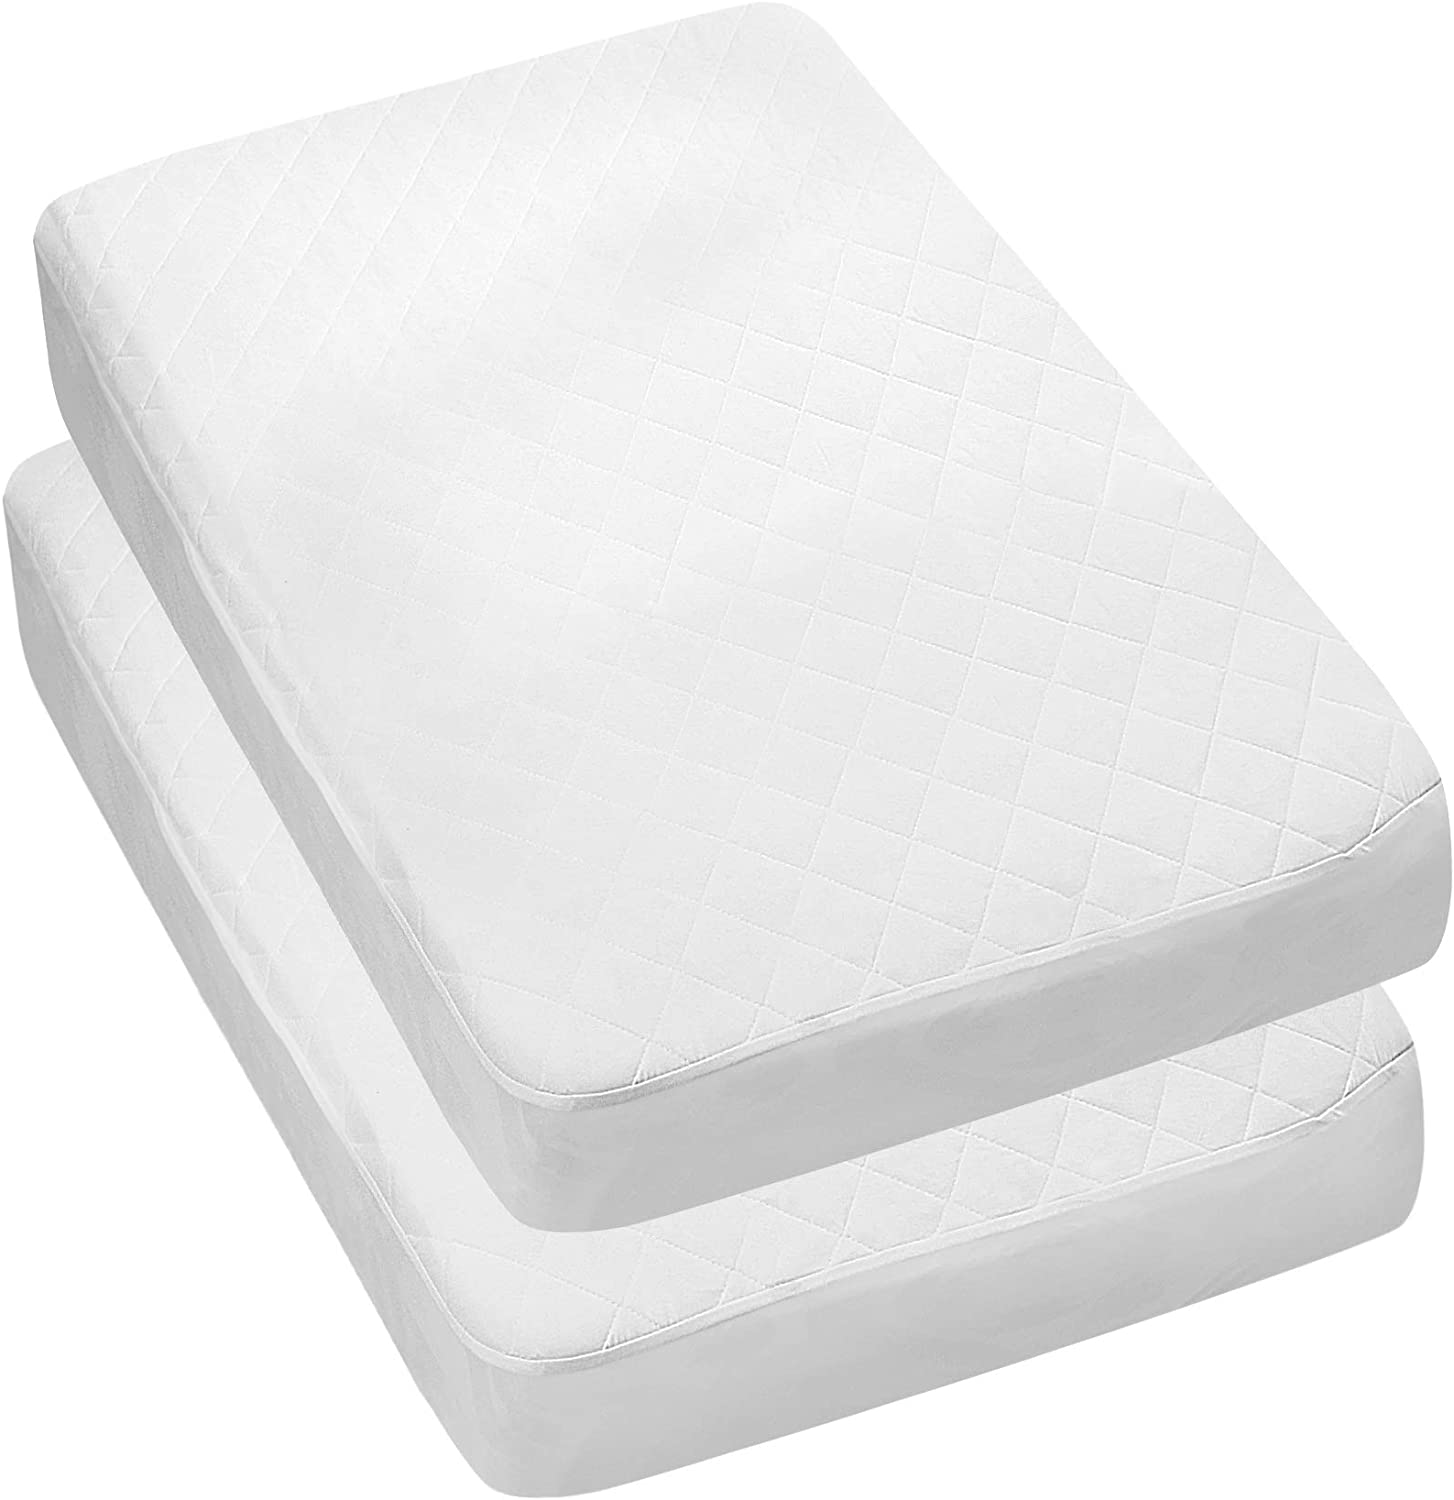 8. Utopia Bedding Waterproof Crib Mattress Protector (Hypoallergenic, 2 Pack)